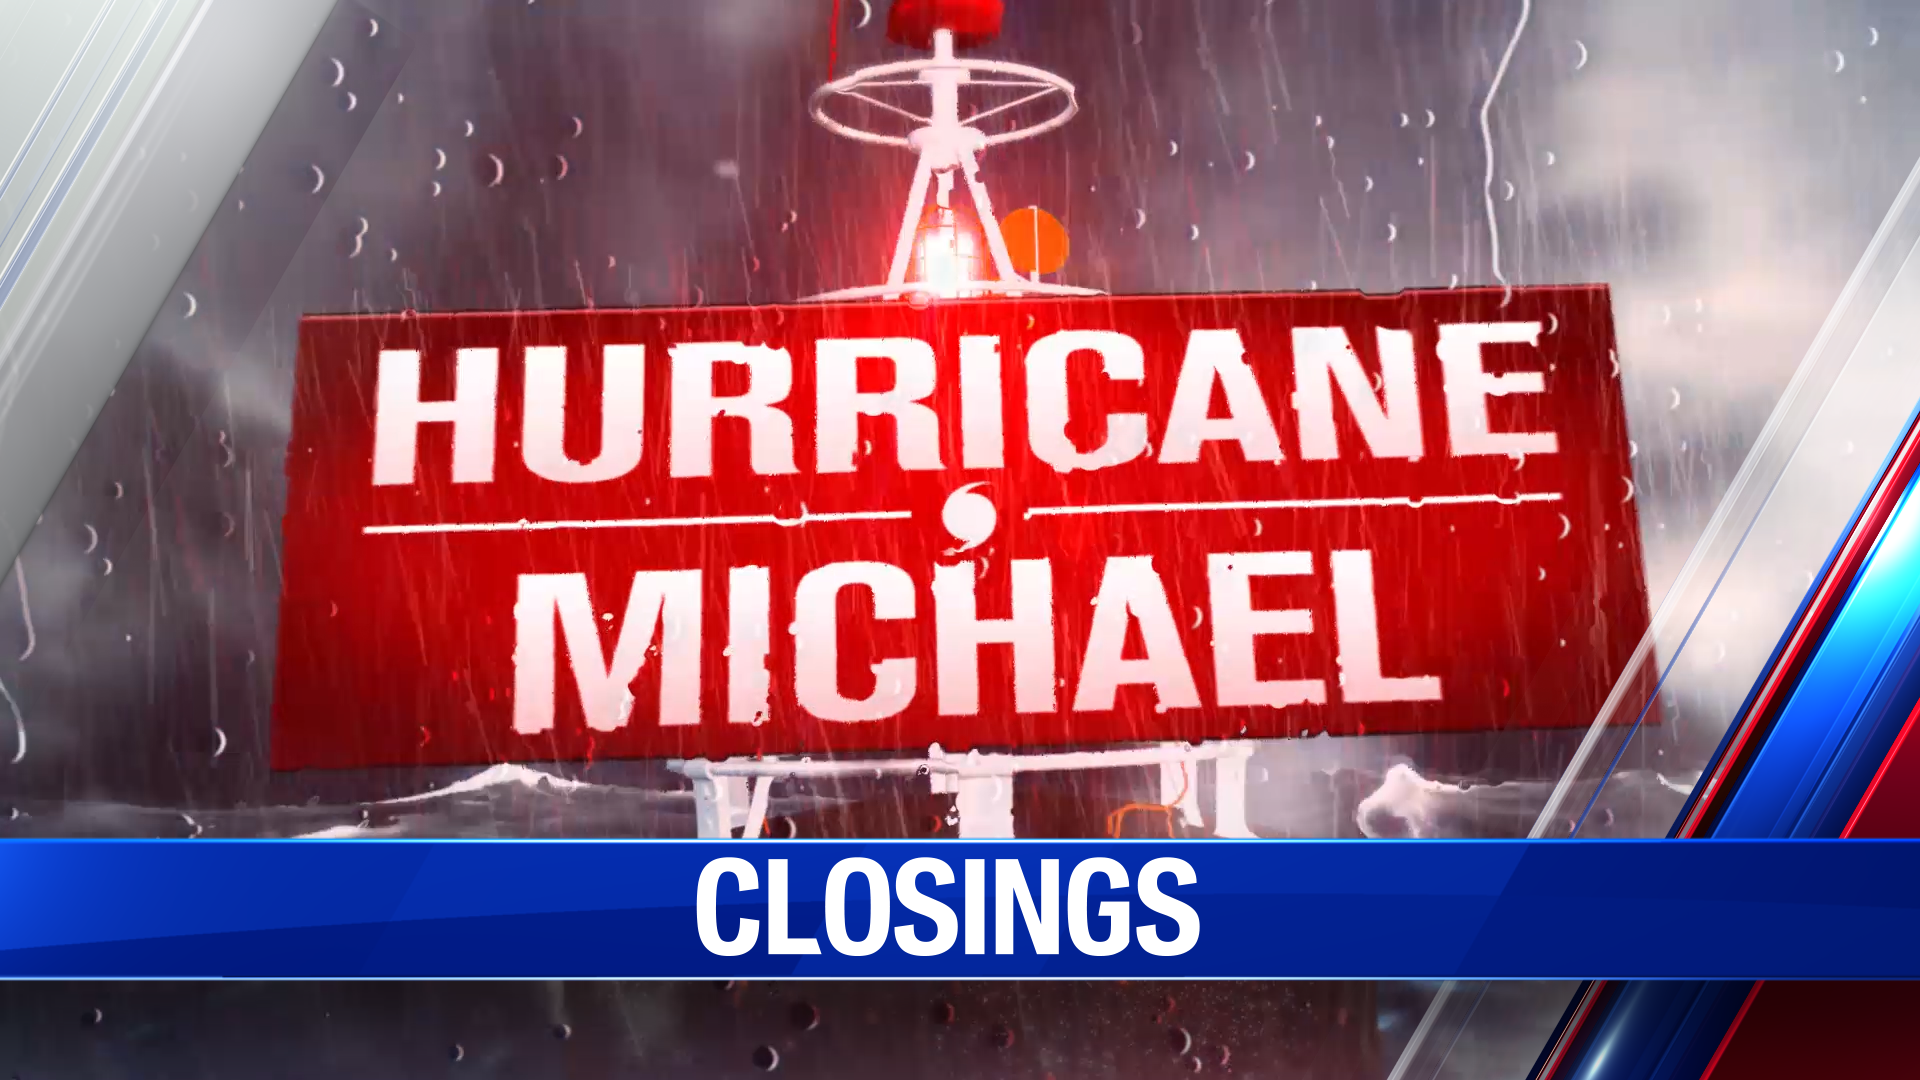 HMICHAEL CLOSINGS_1539013011650.png.jpg